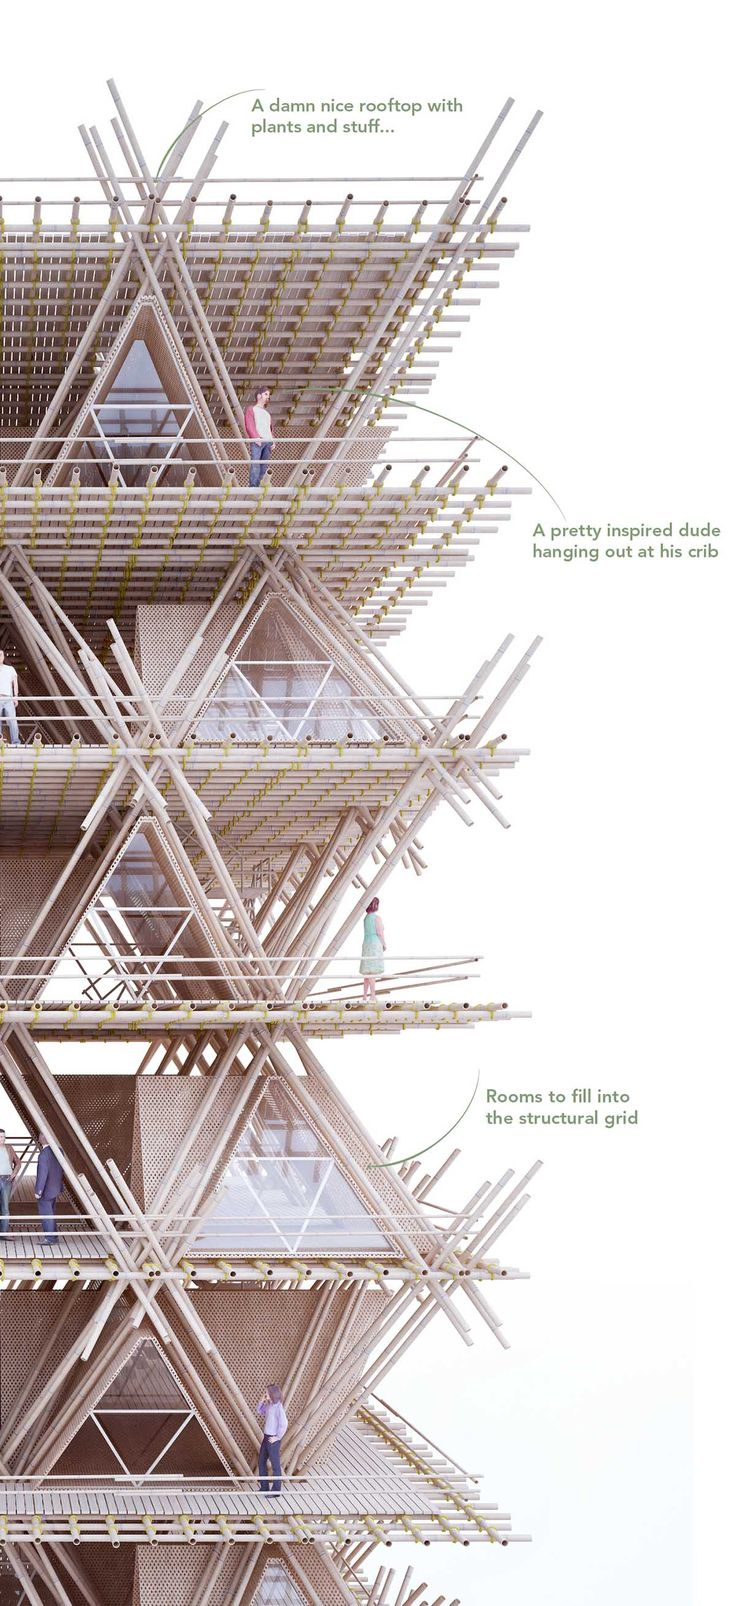 Penda revealed new ecological-Bamboo city vision rethinking the process and sustainable materials